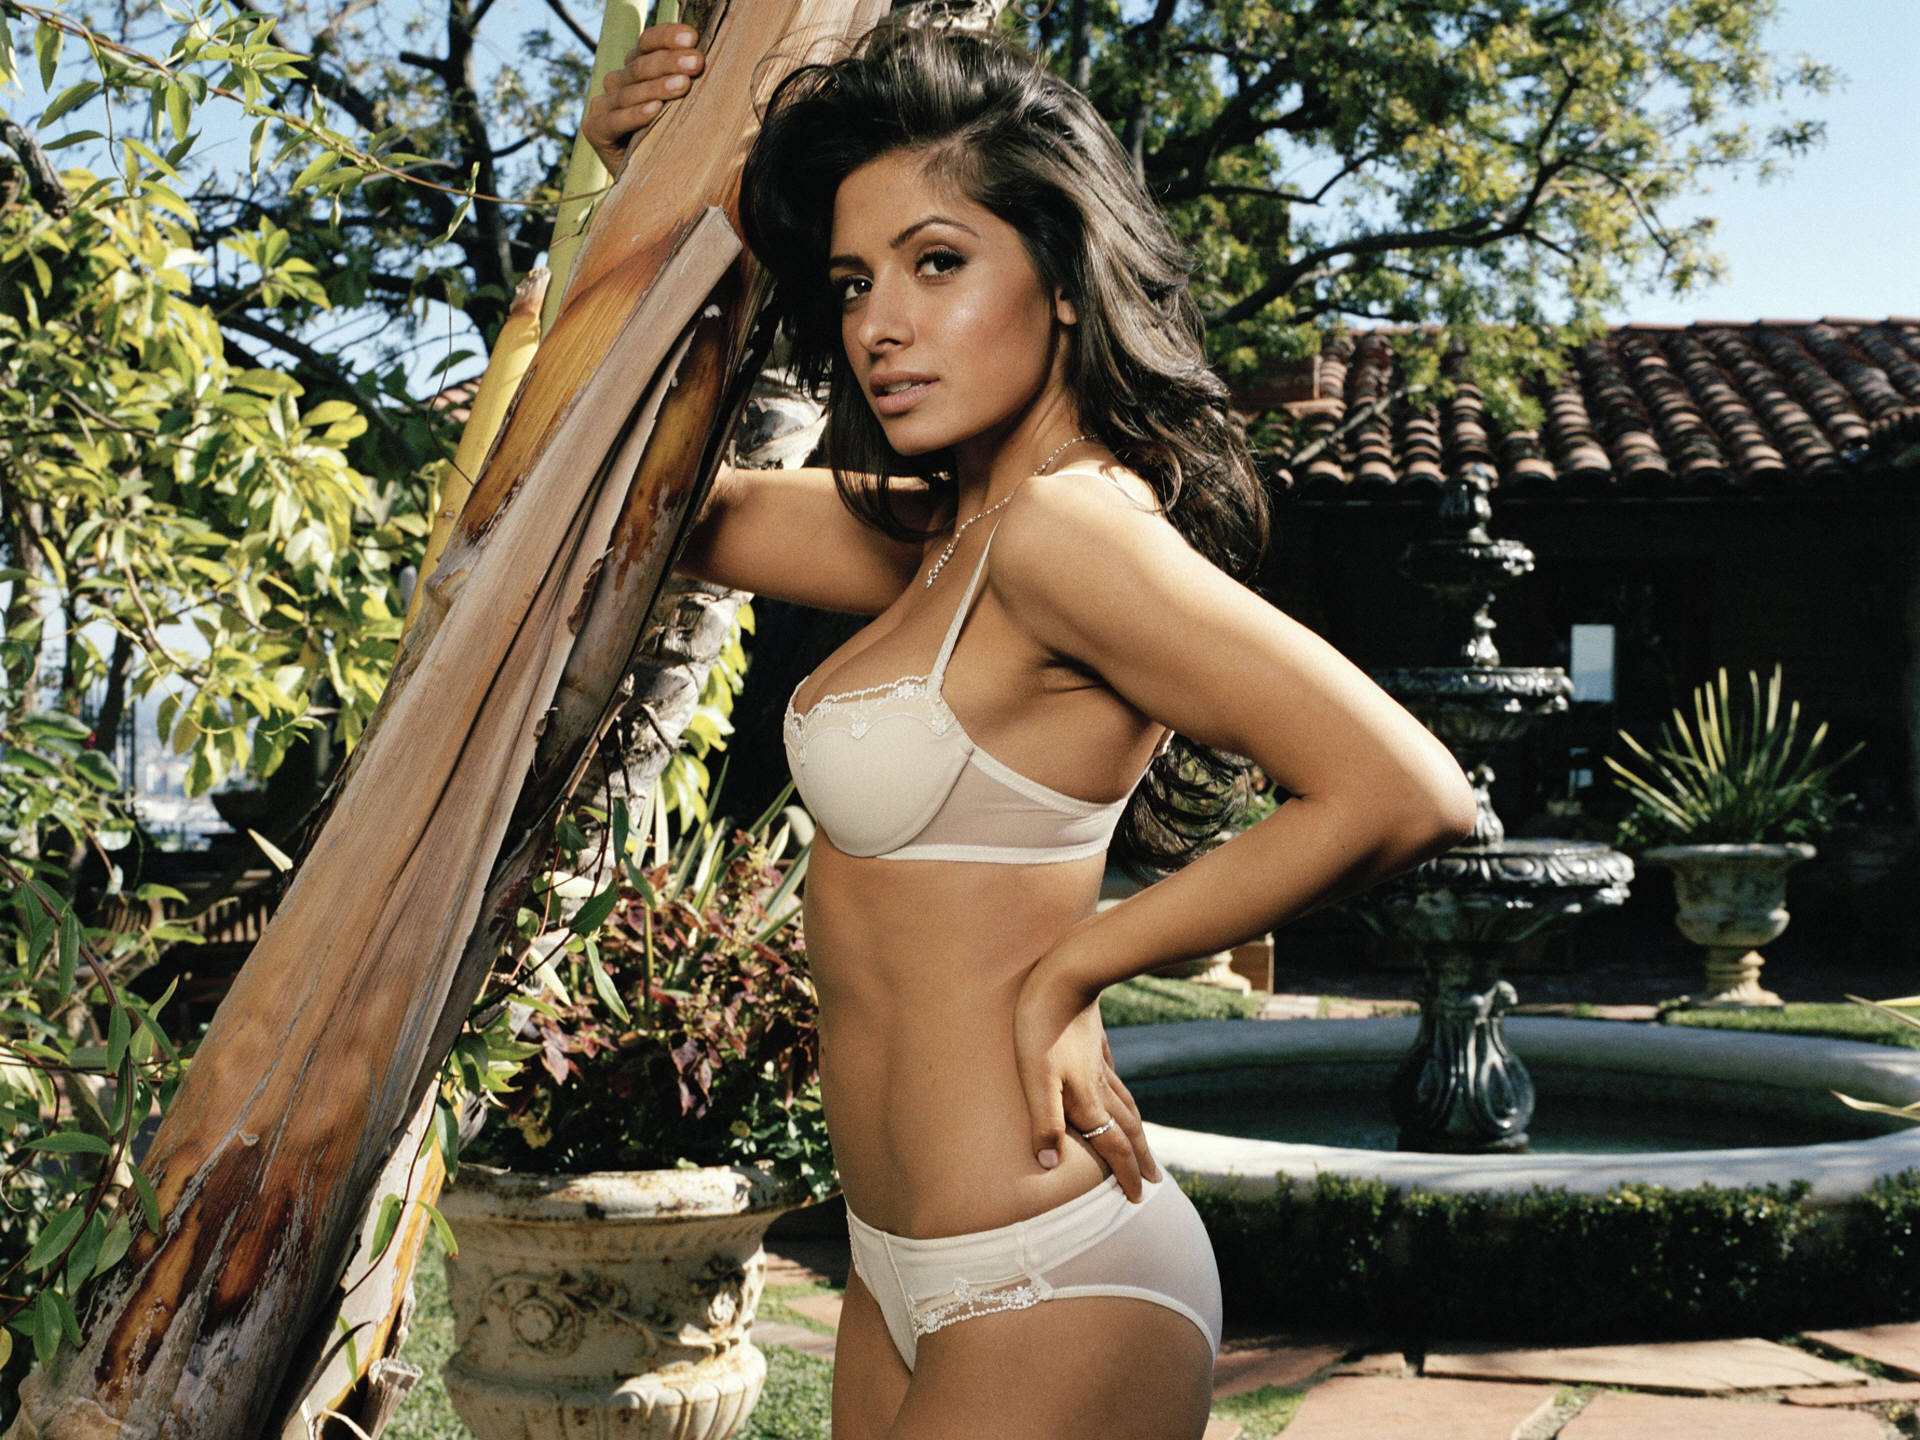 Sarah Shahi Hot PhotoShoot, Sexy Bikini Images